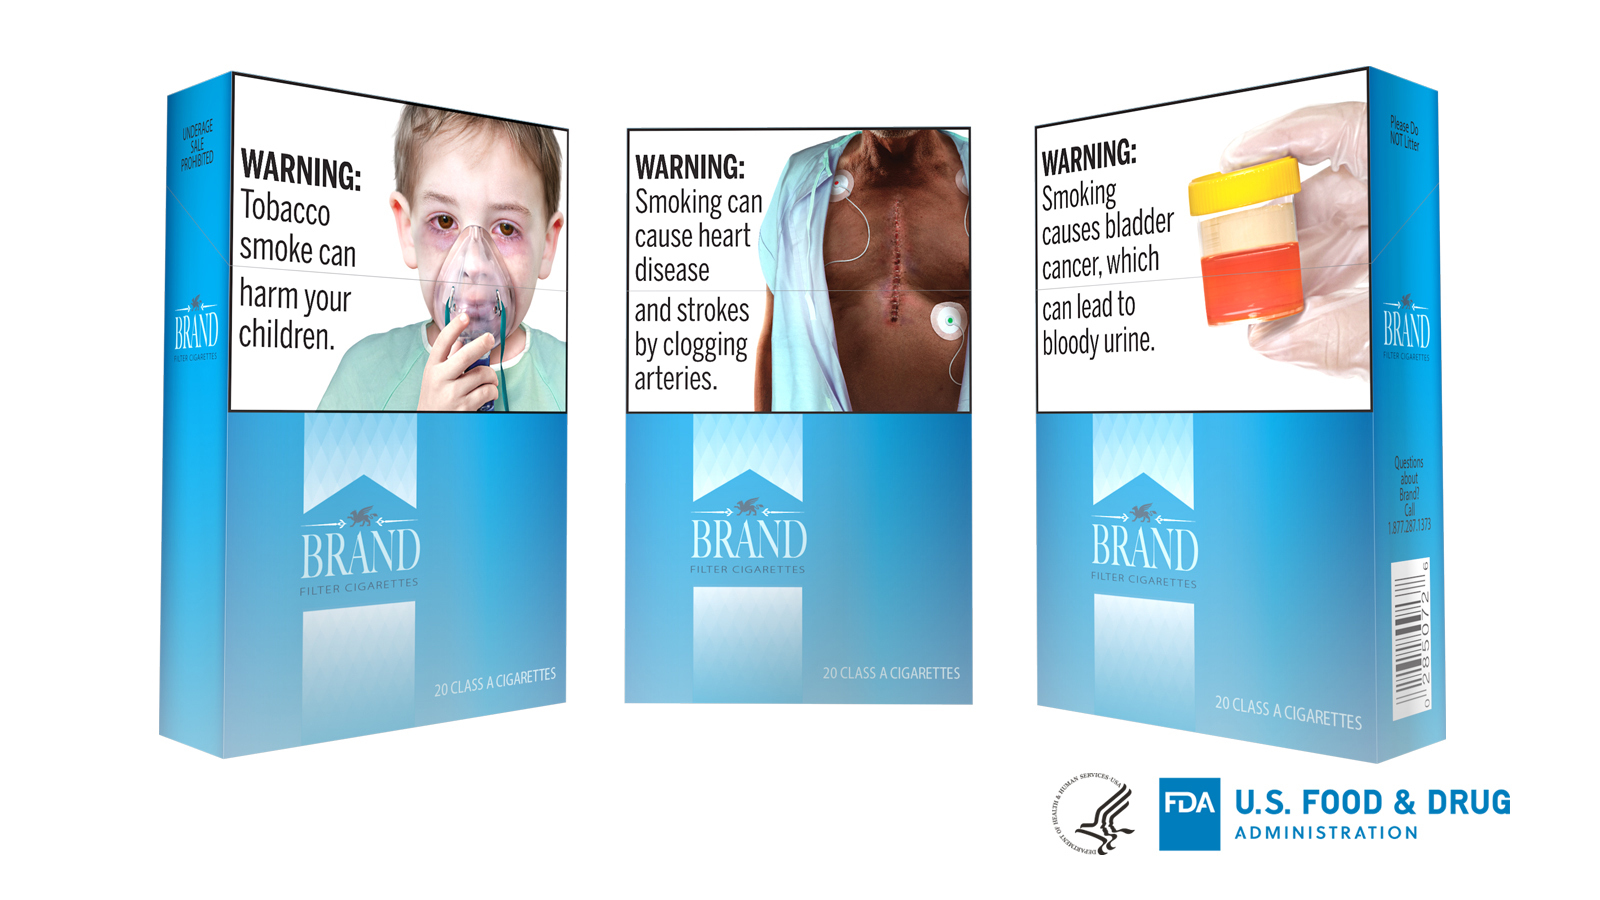 U.S. health officials push to add new, more graphic warning labels to cigarette packs